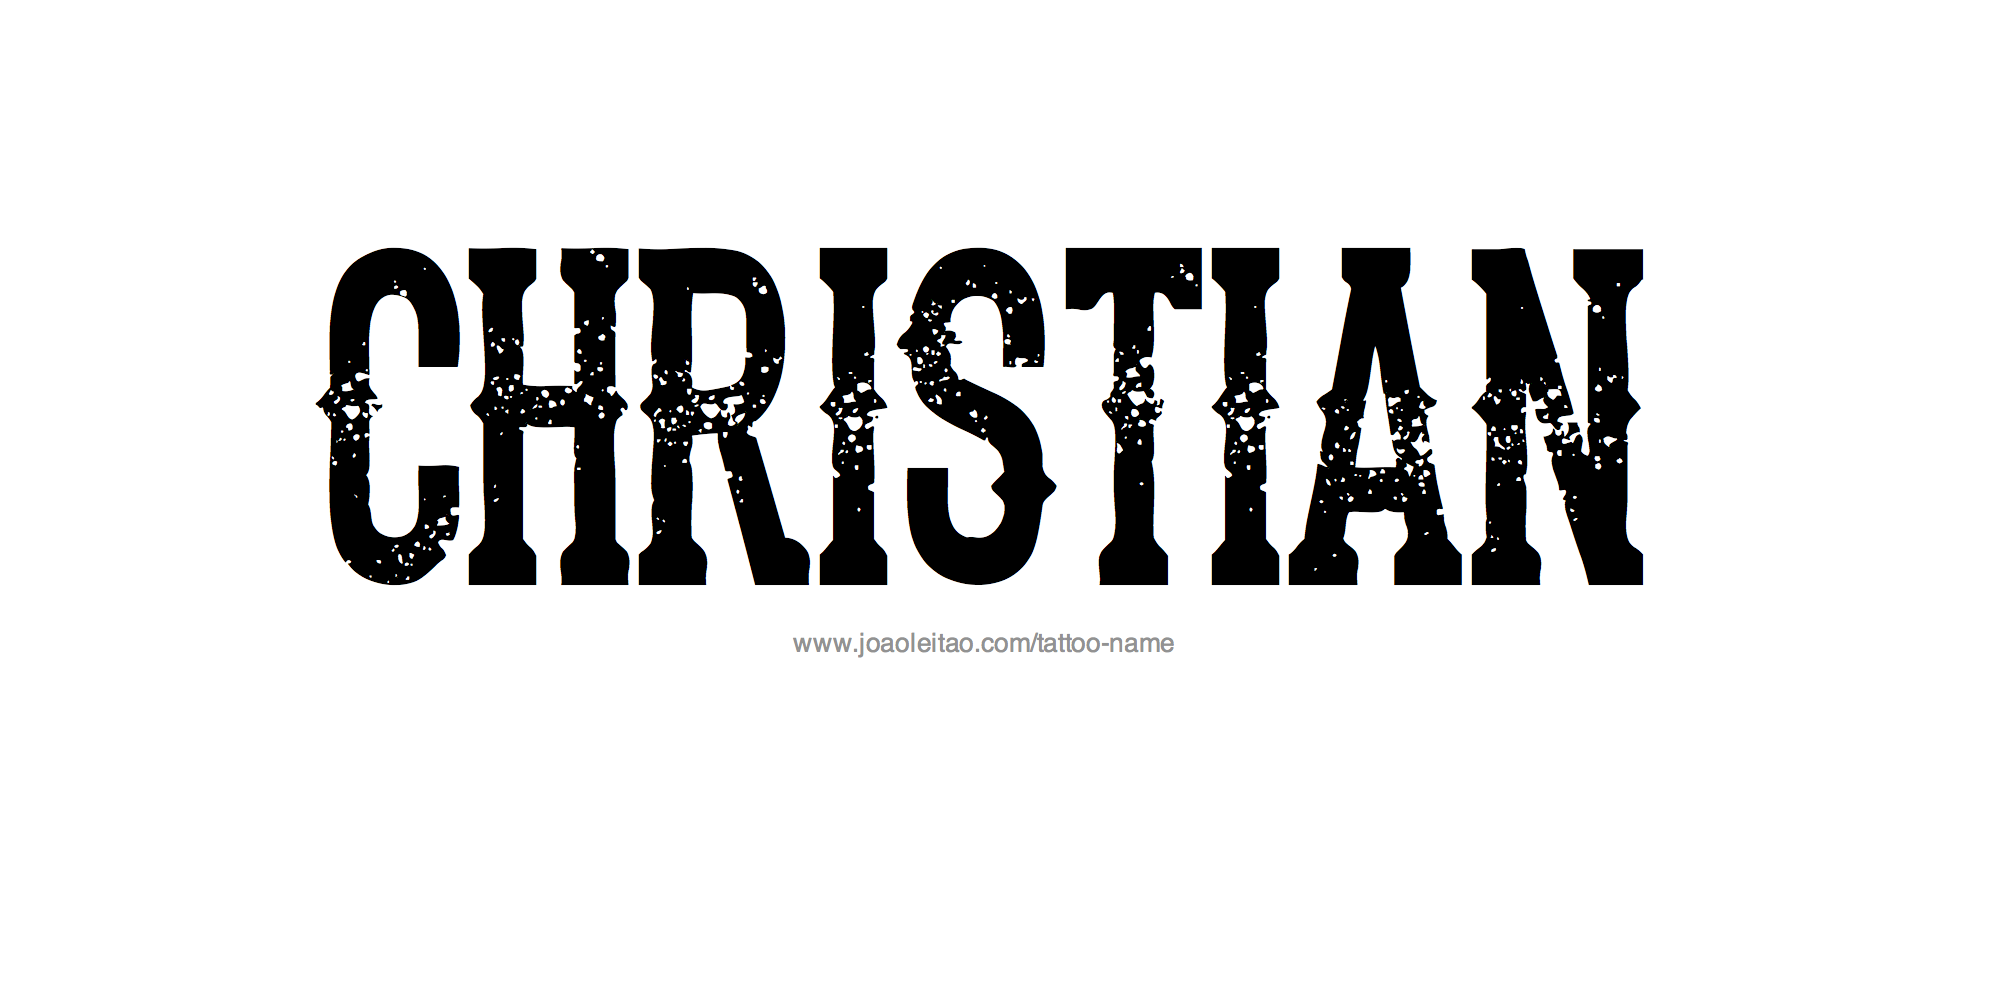 Christian Name Tattoo Designs Christian Names Name Tattoo Designs Name Tattoo